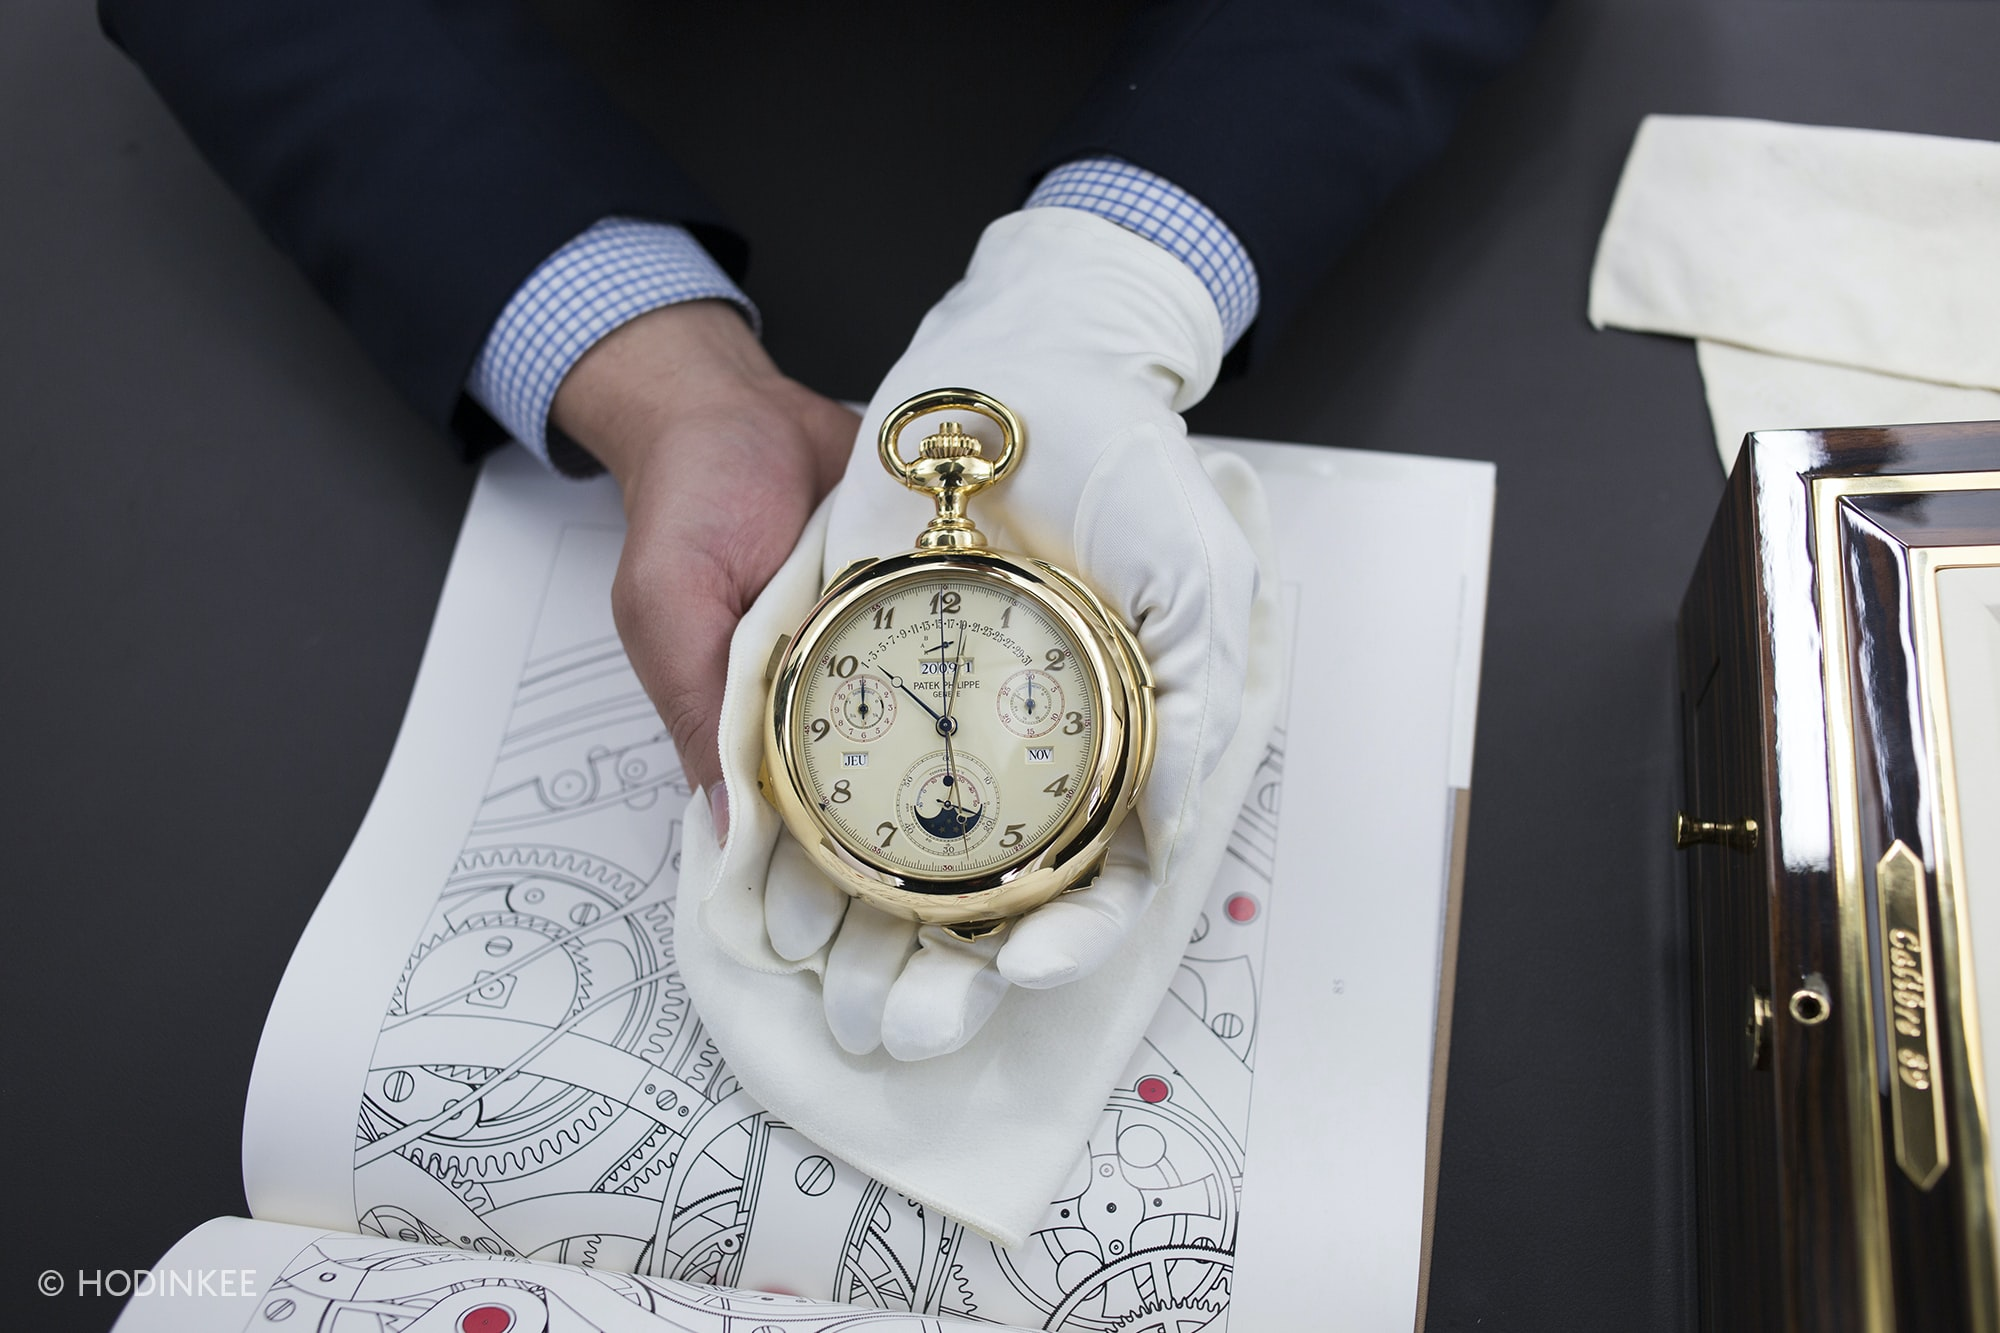 Hands-On: A Patek Philippe Caliber 89, For Sale At Christie's New York Hands-On: A Patek Philippe Caliber 89, For Sale At Christie's New York 20019987 copy